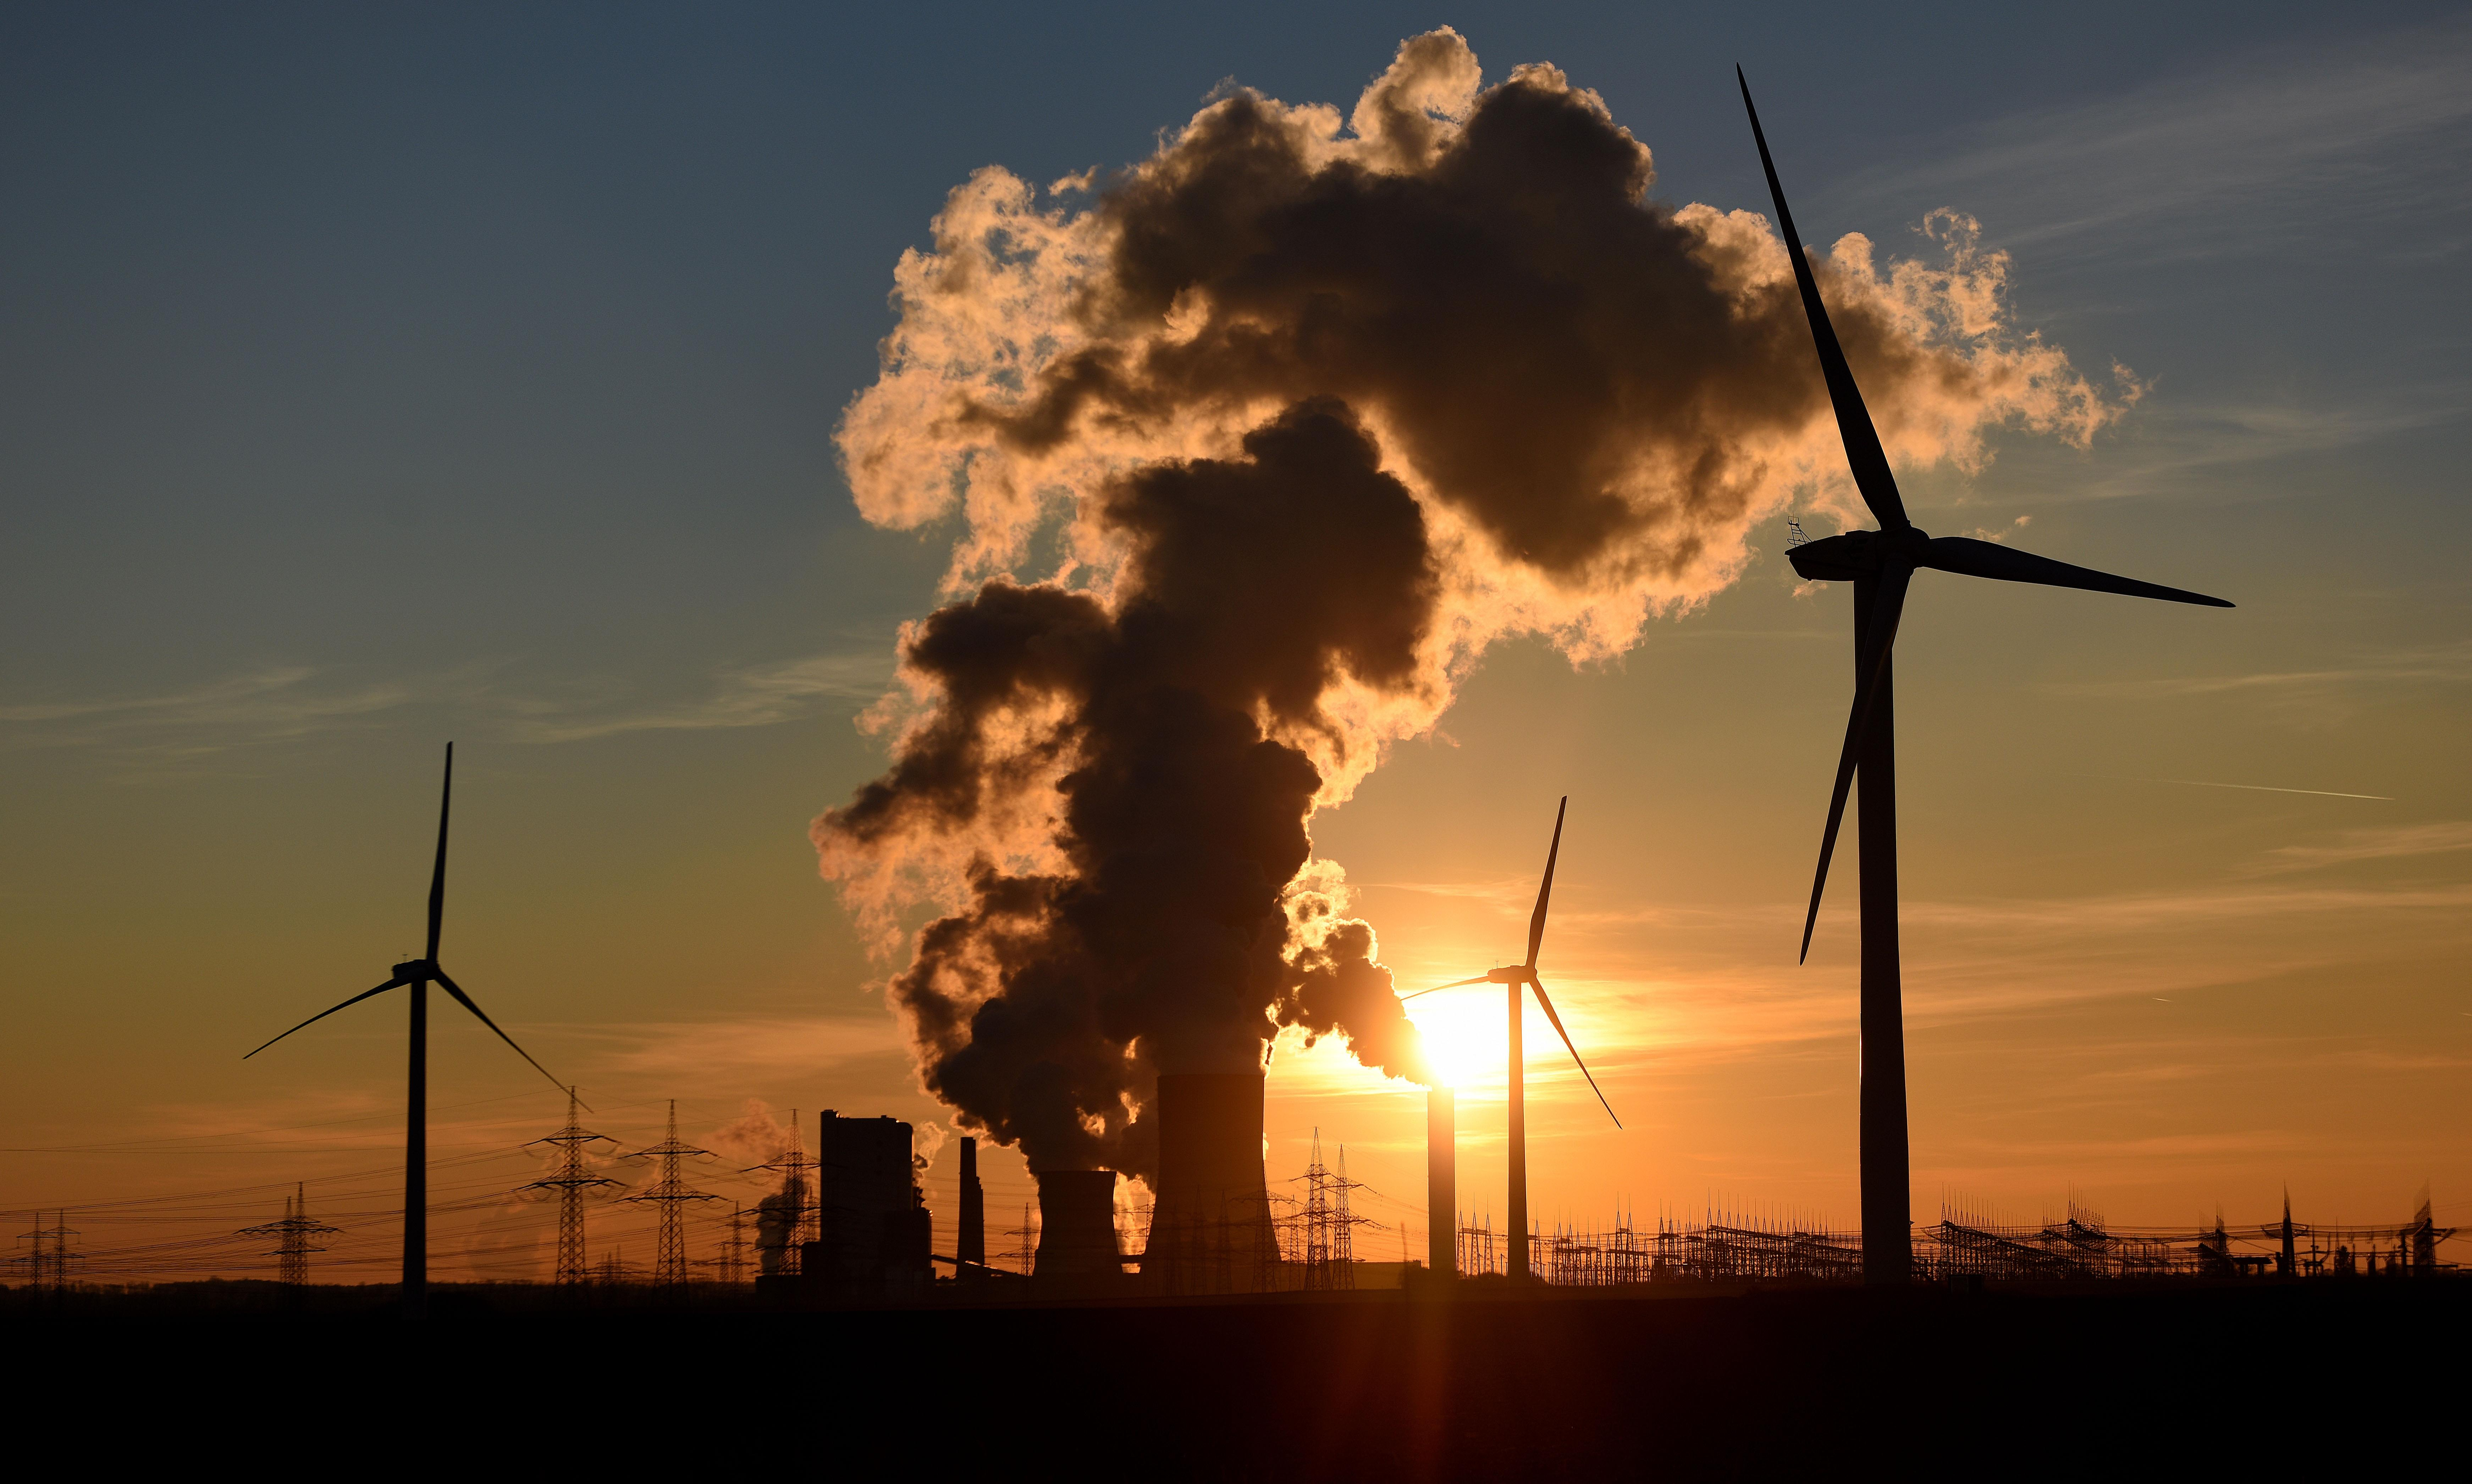 Global demand for fossil fuels will peak in 2023, says thinktank